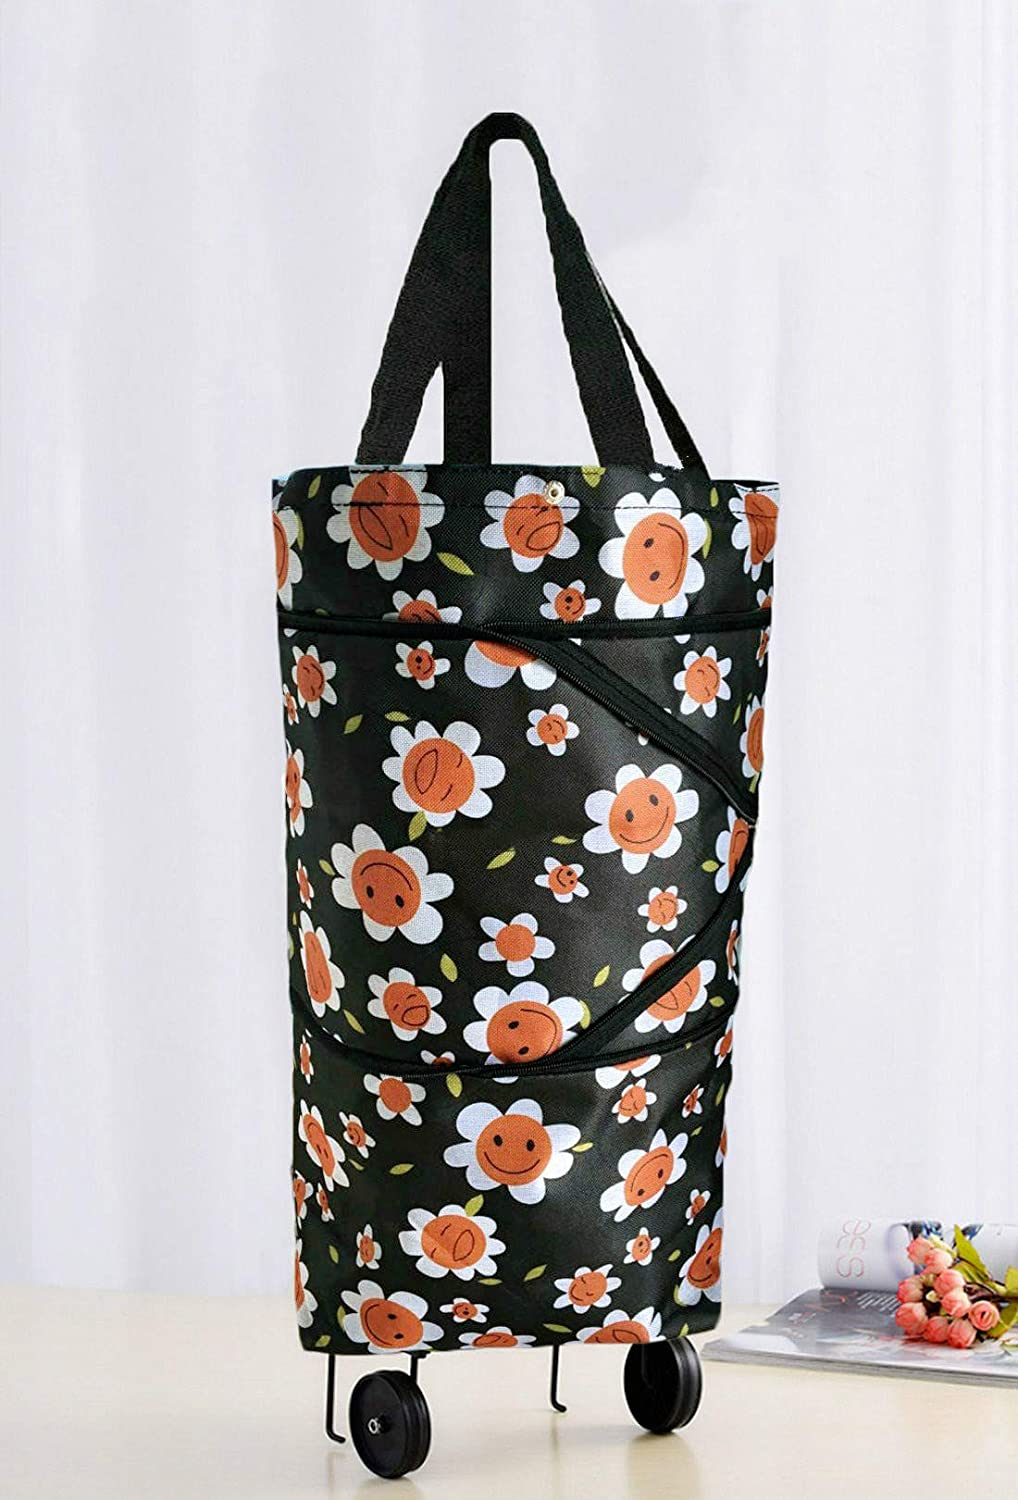 Nice Red Floral Cocobuy Collapsible Trolley Bags Folding Shopping Bag with Wheels Foldable Shopping Cart Reusable Shopping Bags Grocery Bags Shopping Trolley Bag on Wheels for Women